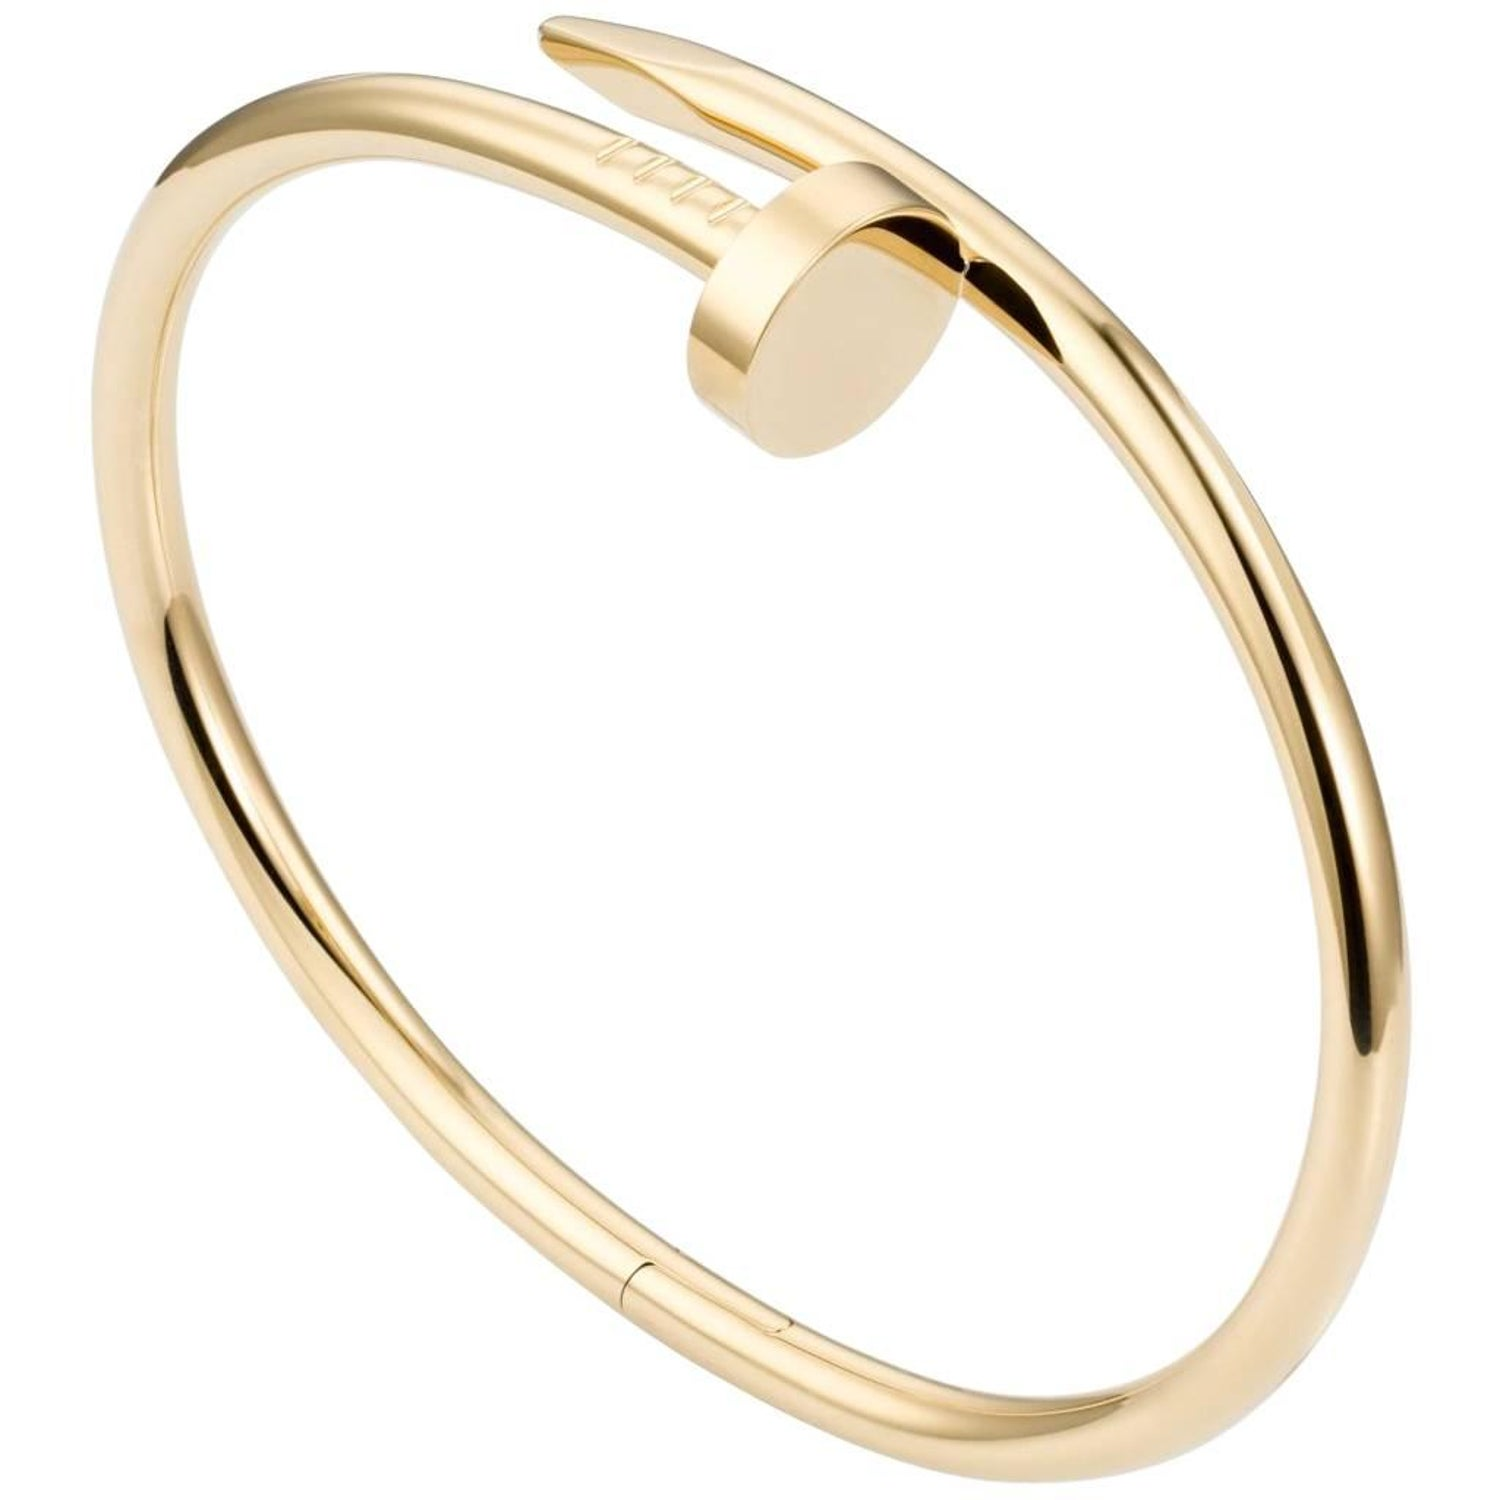 clou contemporary charming un image bracelet cartier ideas bangle nail head juste gold